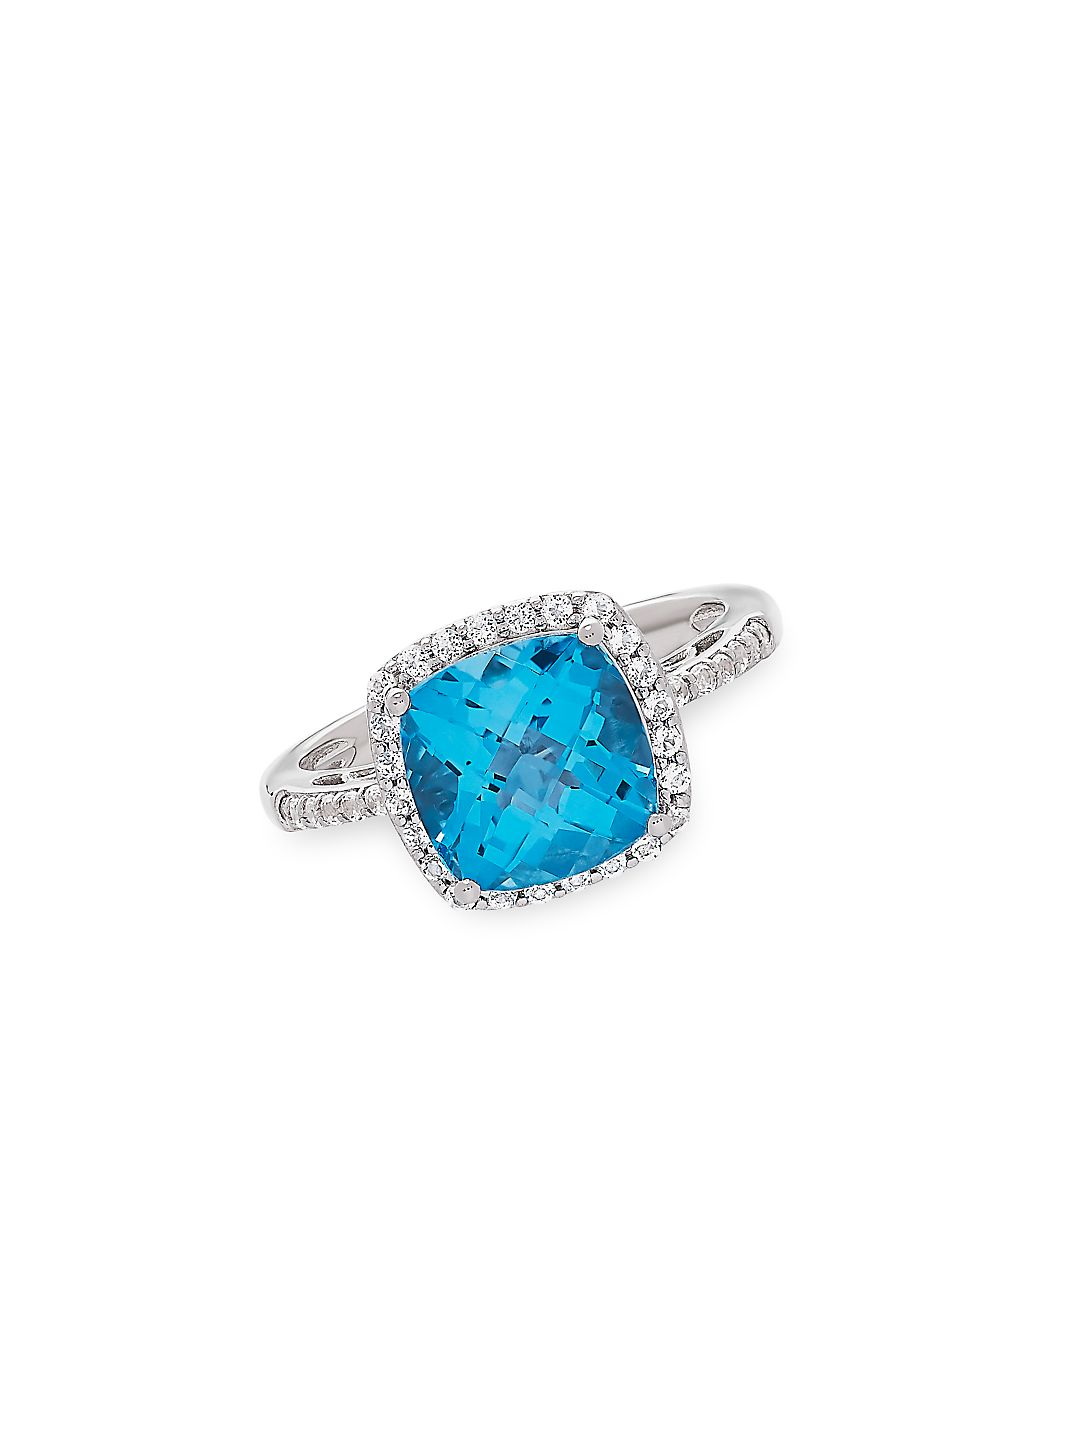 Sterling Silver, Swiss Blue Topaz & White Topaz Solitaire Ring